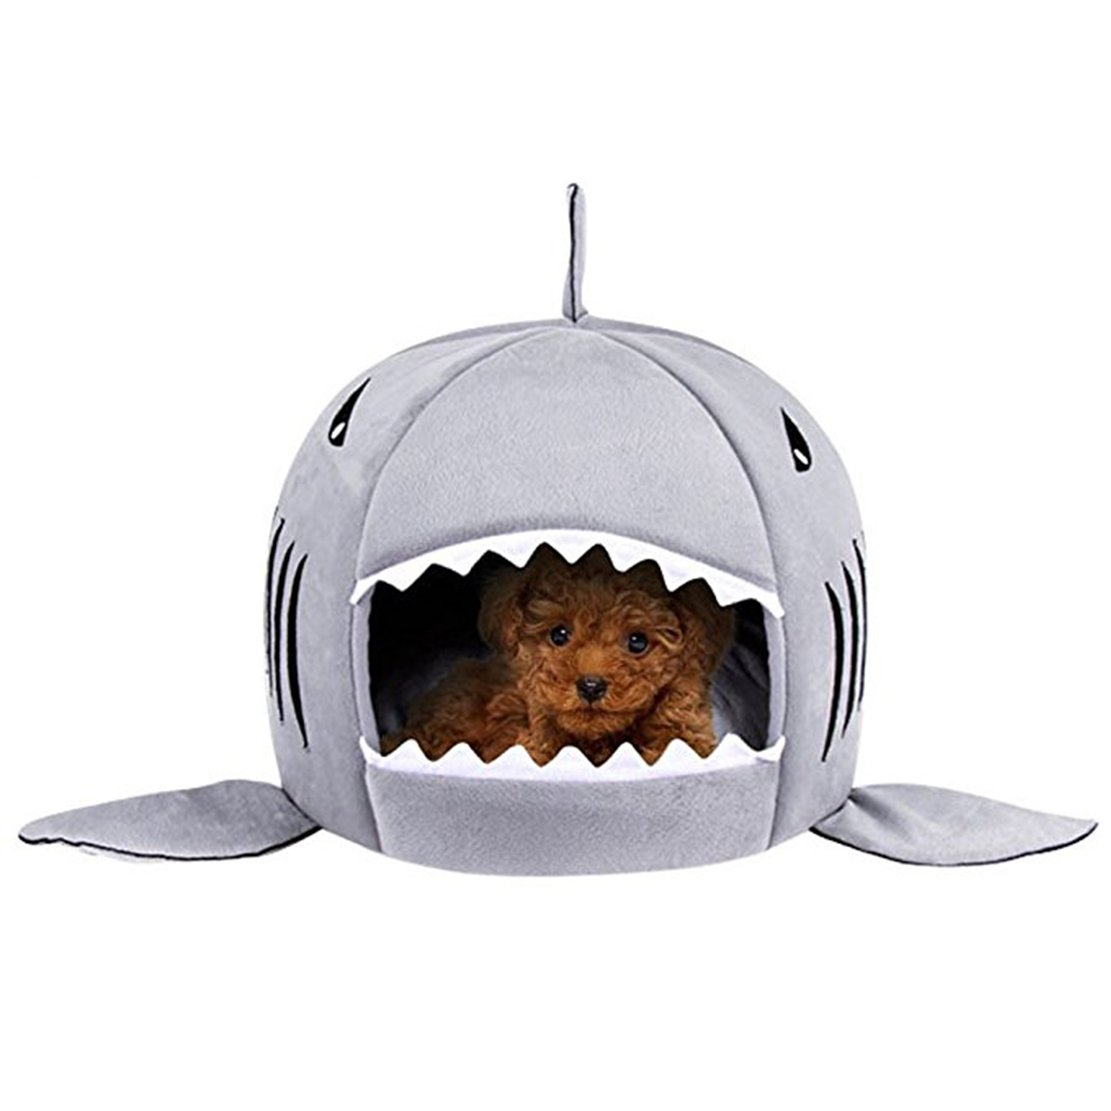 Pet House Shark Round Puppy Cat Bed chenil (M) wyhweilong 4A-REFC-B54T